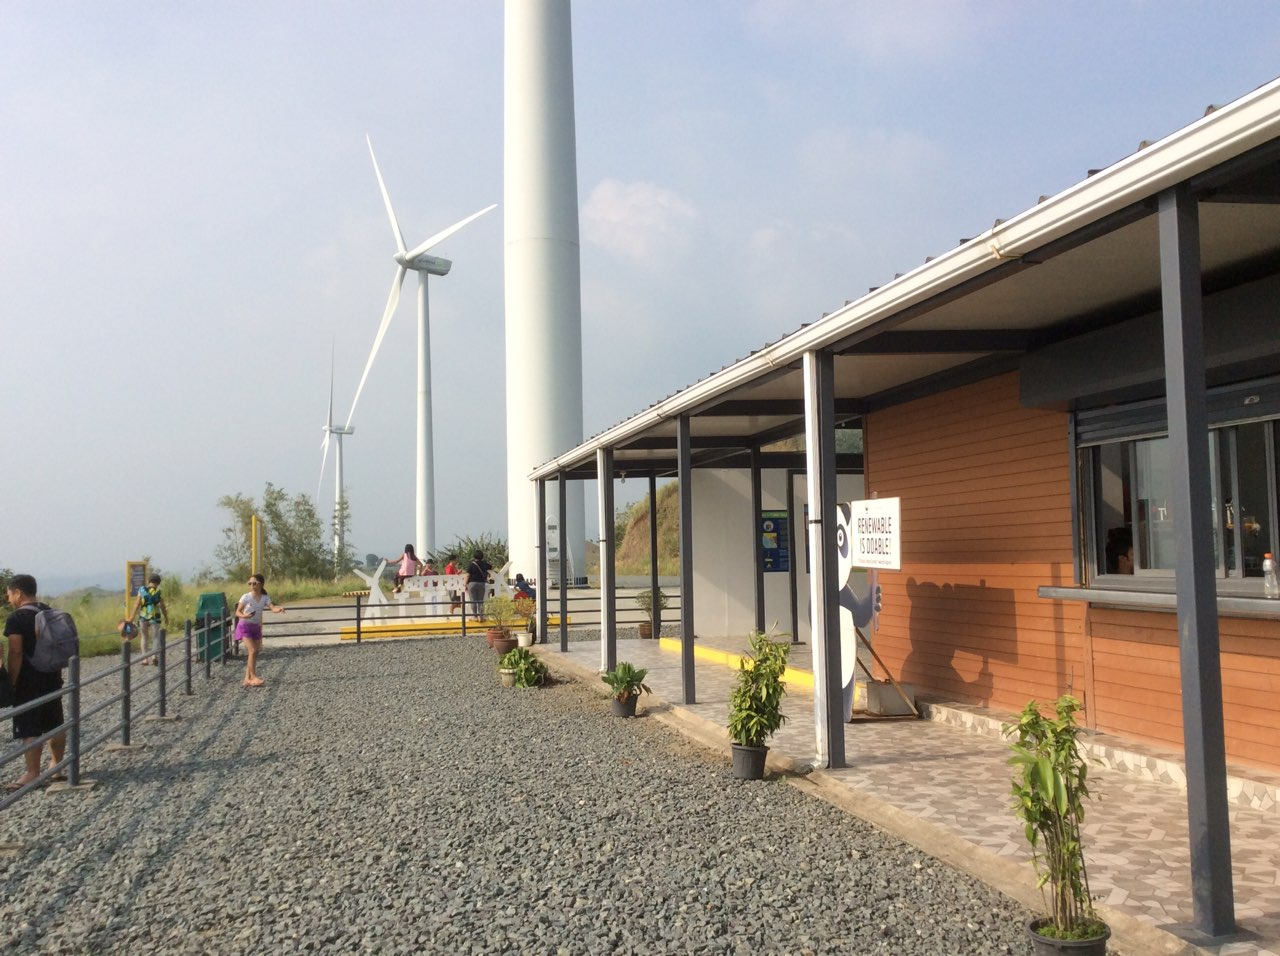 Travelling to Calabarzon, Rizal and Laguna area, one will not miss what seemed like a scene lifted from Bangui, Ilocos Norte, South Luzon's very own windmills. (PNA photo)